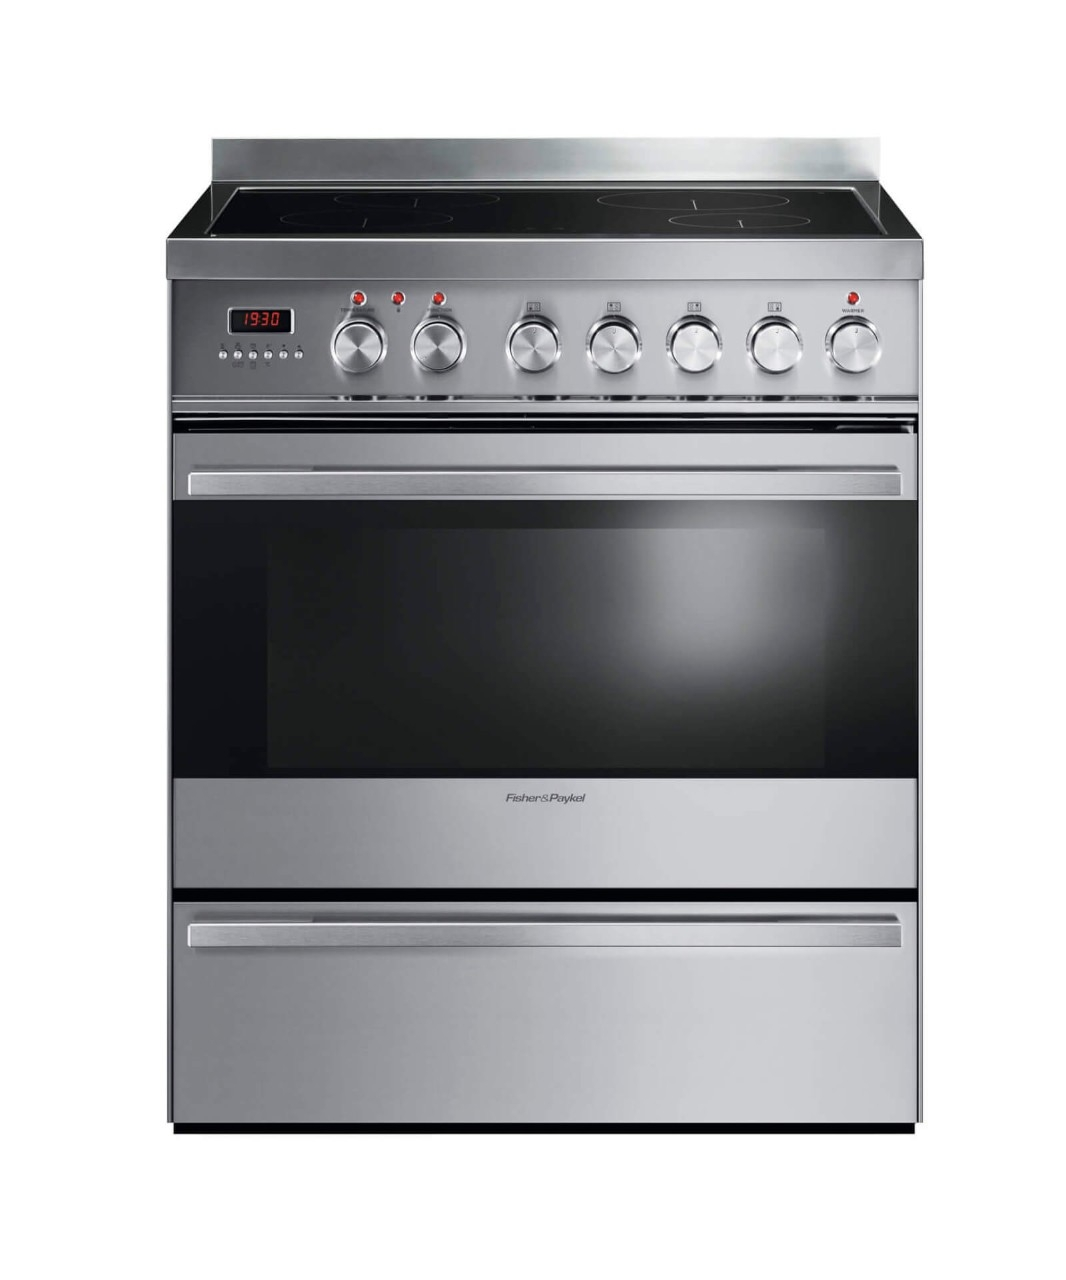 DISPLAY MODEL--Induction Range 30, Self Cleaning